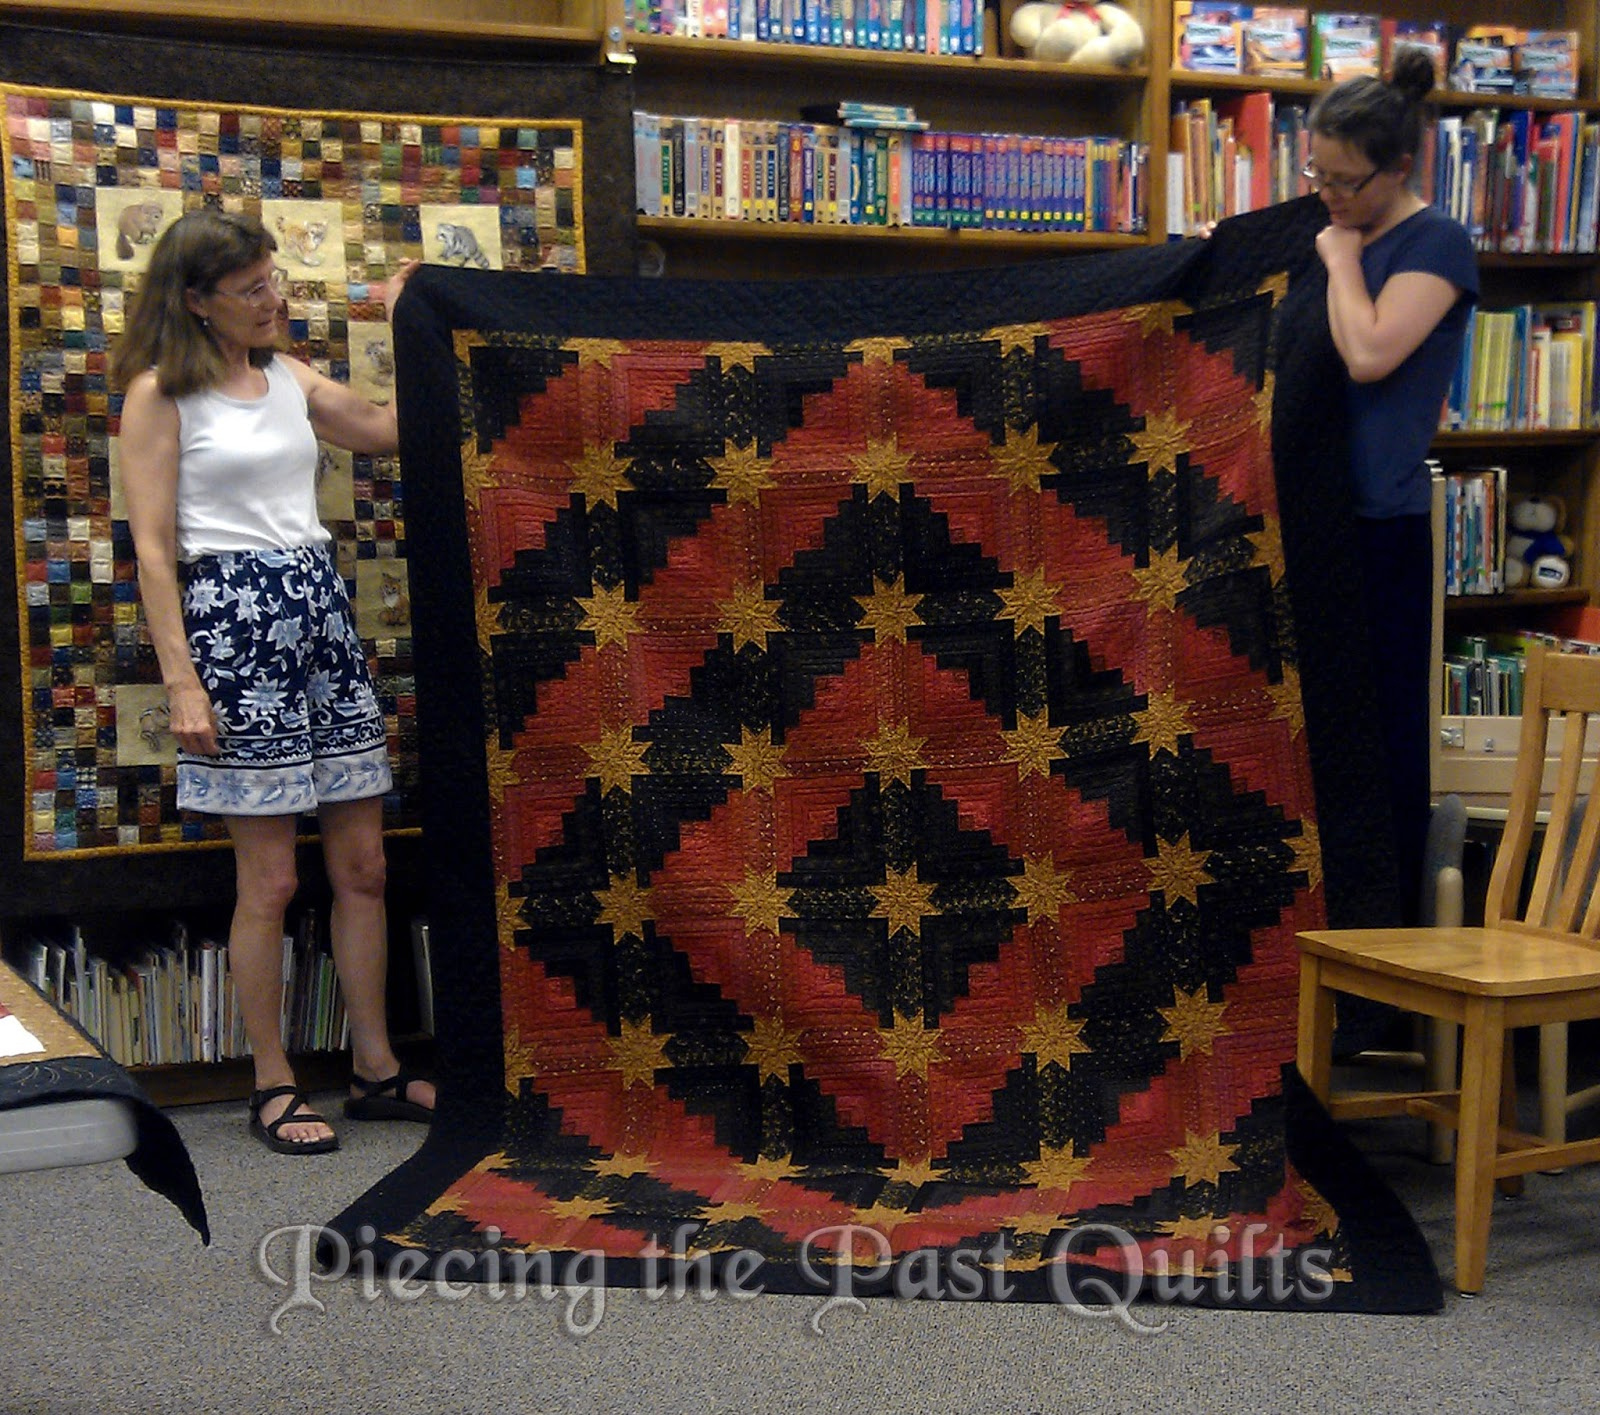 Piecing the Past Quilts: Saturday at the Quilt Museum - Log Cabin ... : colorado log cabin quilt - Adamdwight.com